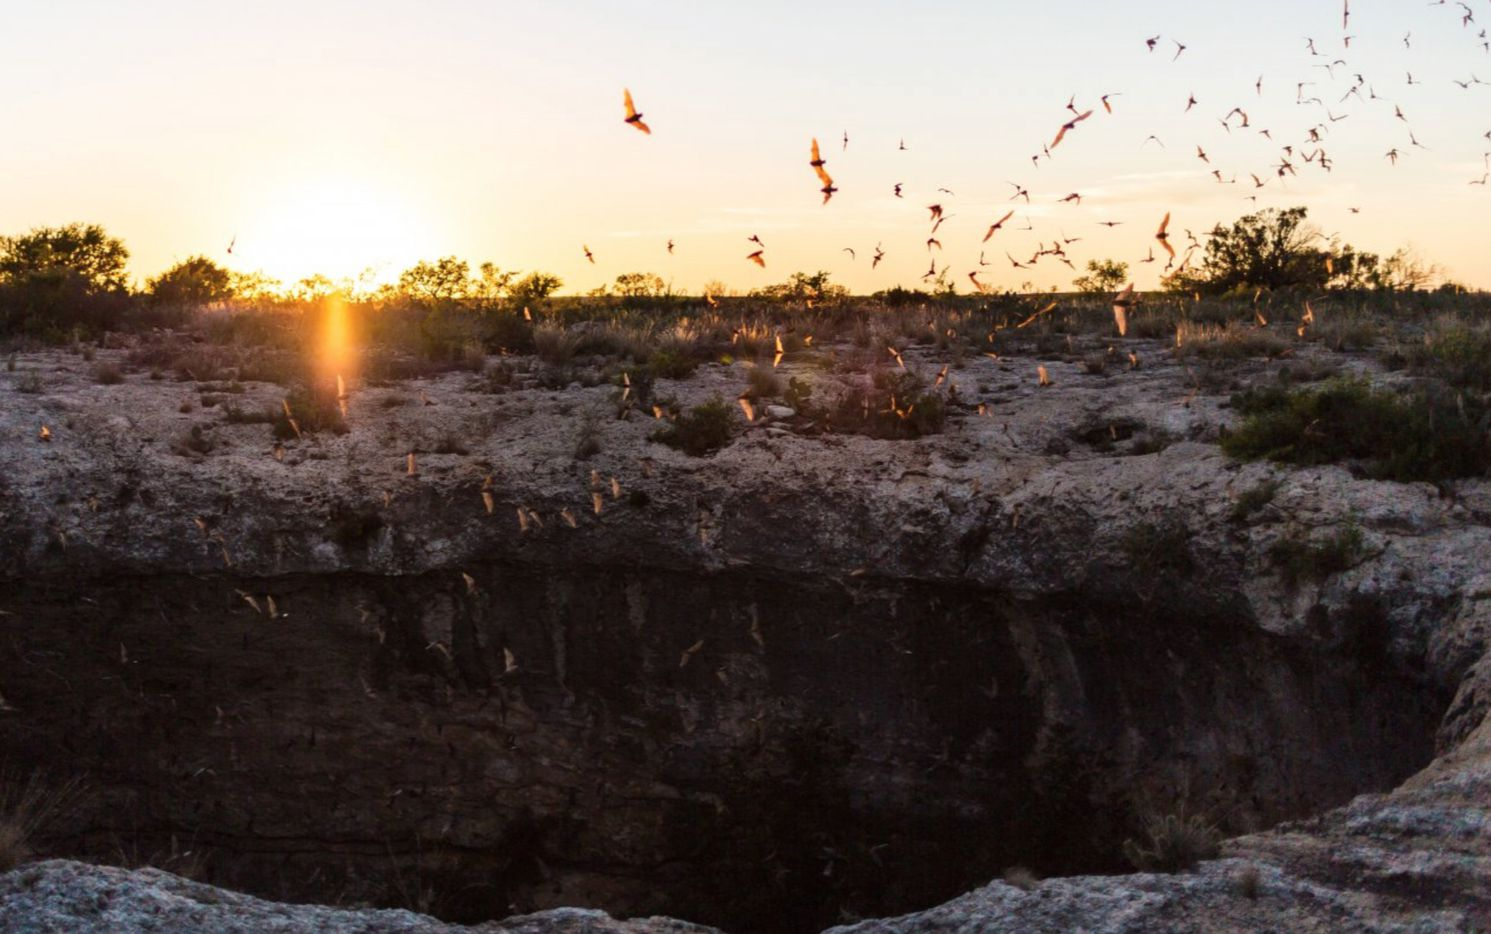 Bats fly out of a cave on Monarch Ranch.